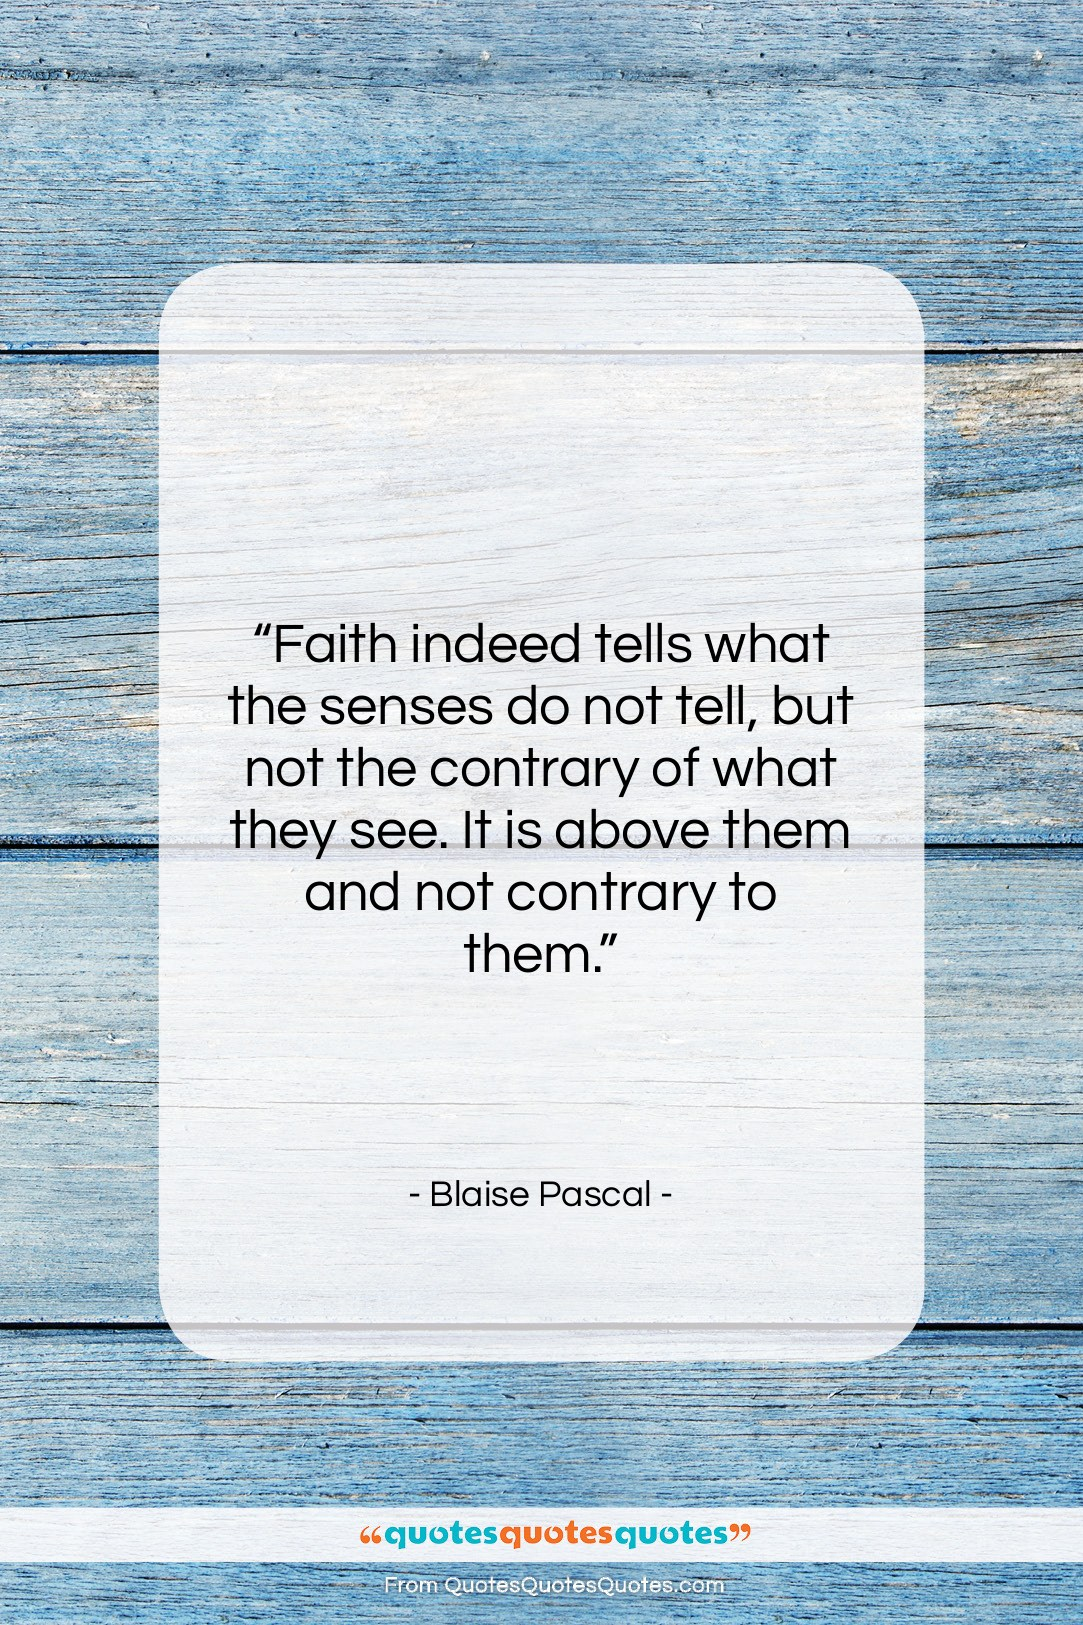 """Blaise Pascal quote: """"Faith indeed tells what the senses do…""""- at QuotesQuotesQuotes.com"""